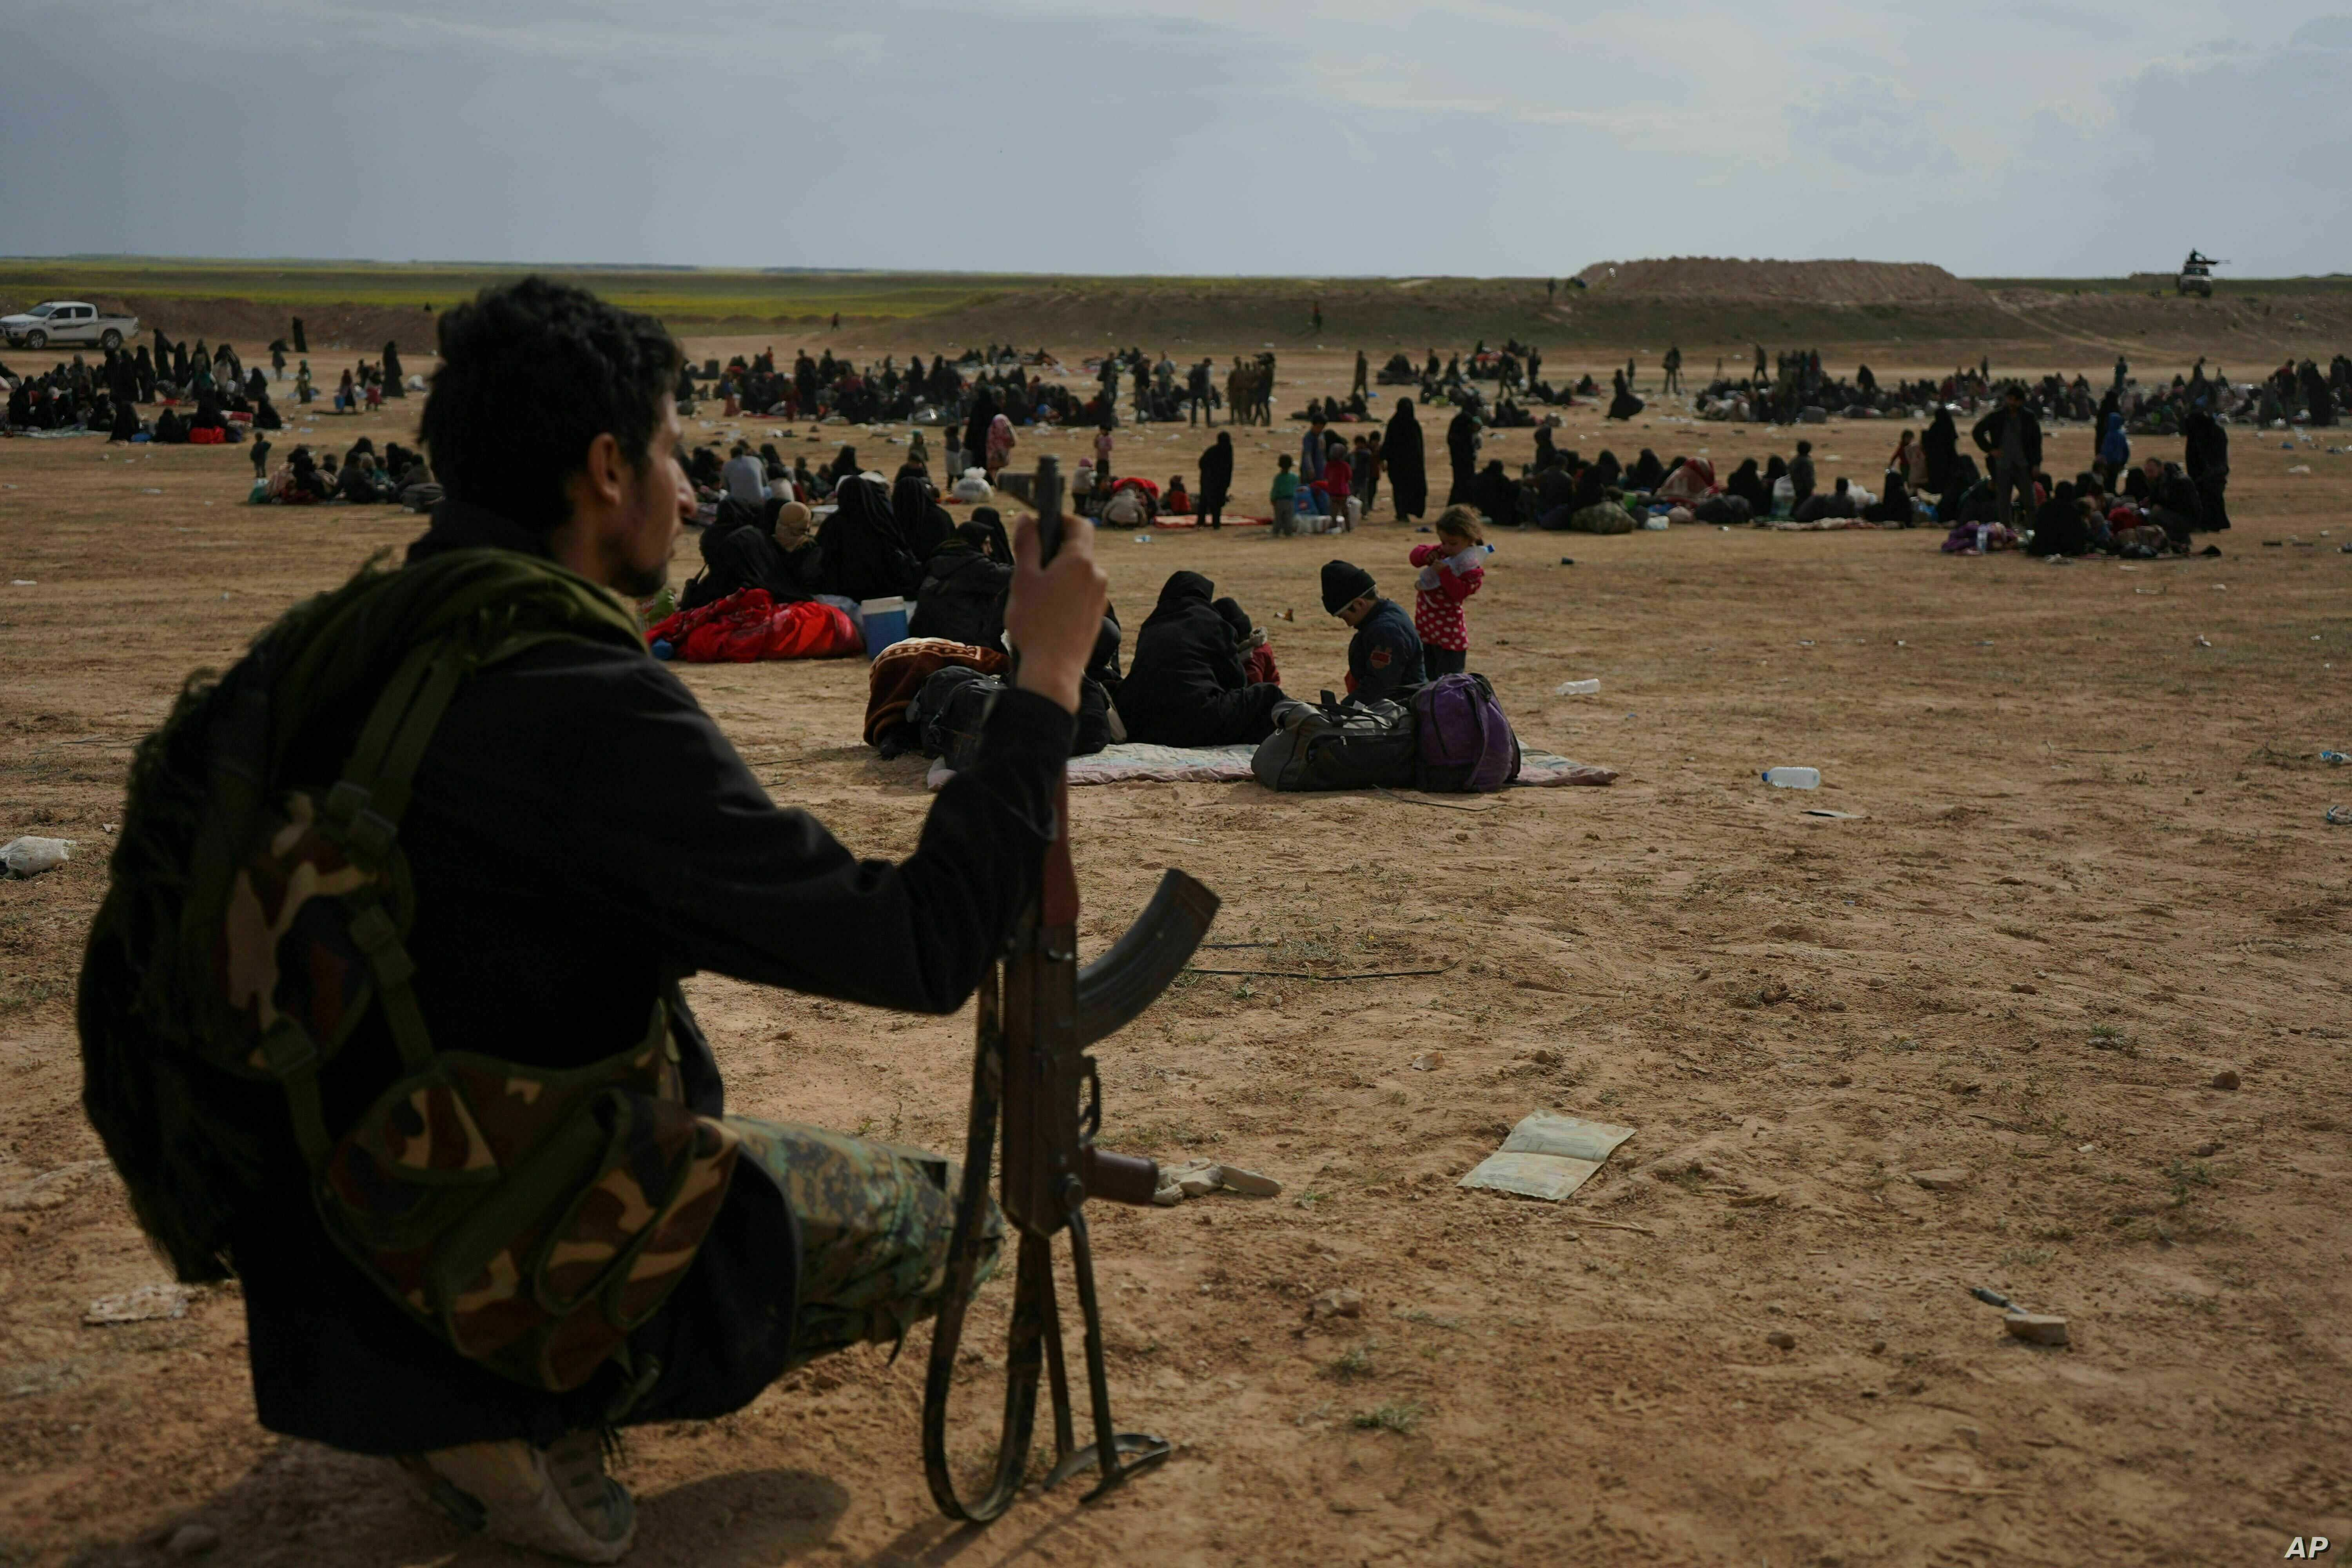 FILE -- A member of U.S.-backed Syrian Democratic Forces (SDF) watches over people who were evacuated out of the last territory held by Islamic State militants, outside Baghouz, Syria, March 5, 2019.